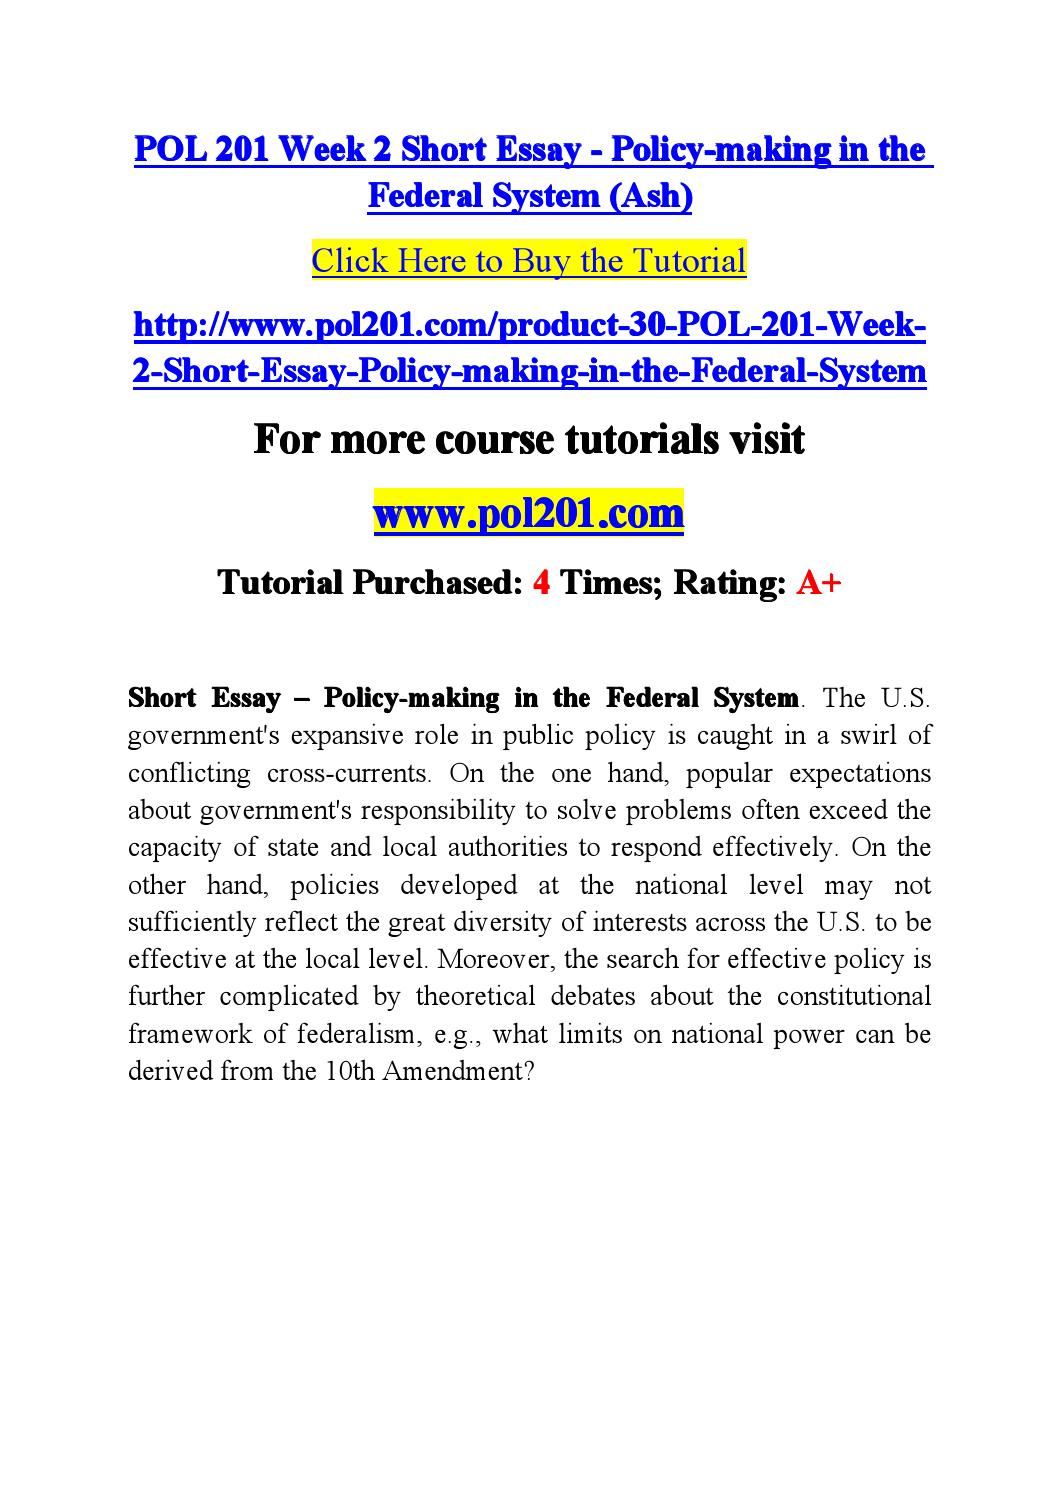 short essay policy making in the federal system Thesis auditor independence an essay on health and medicine free essays on medical technology esl expository essay ghostwriter sites us spencer foundation.